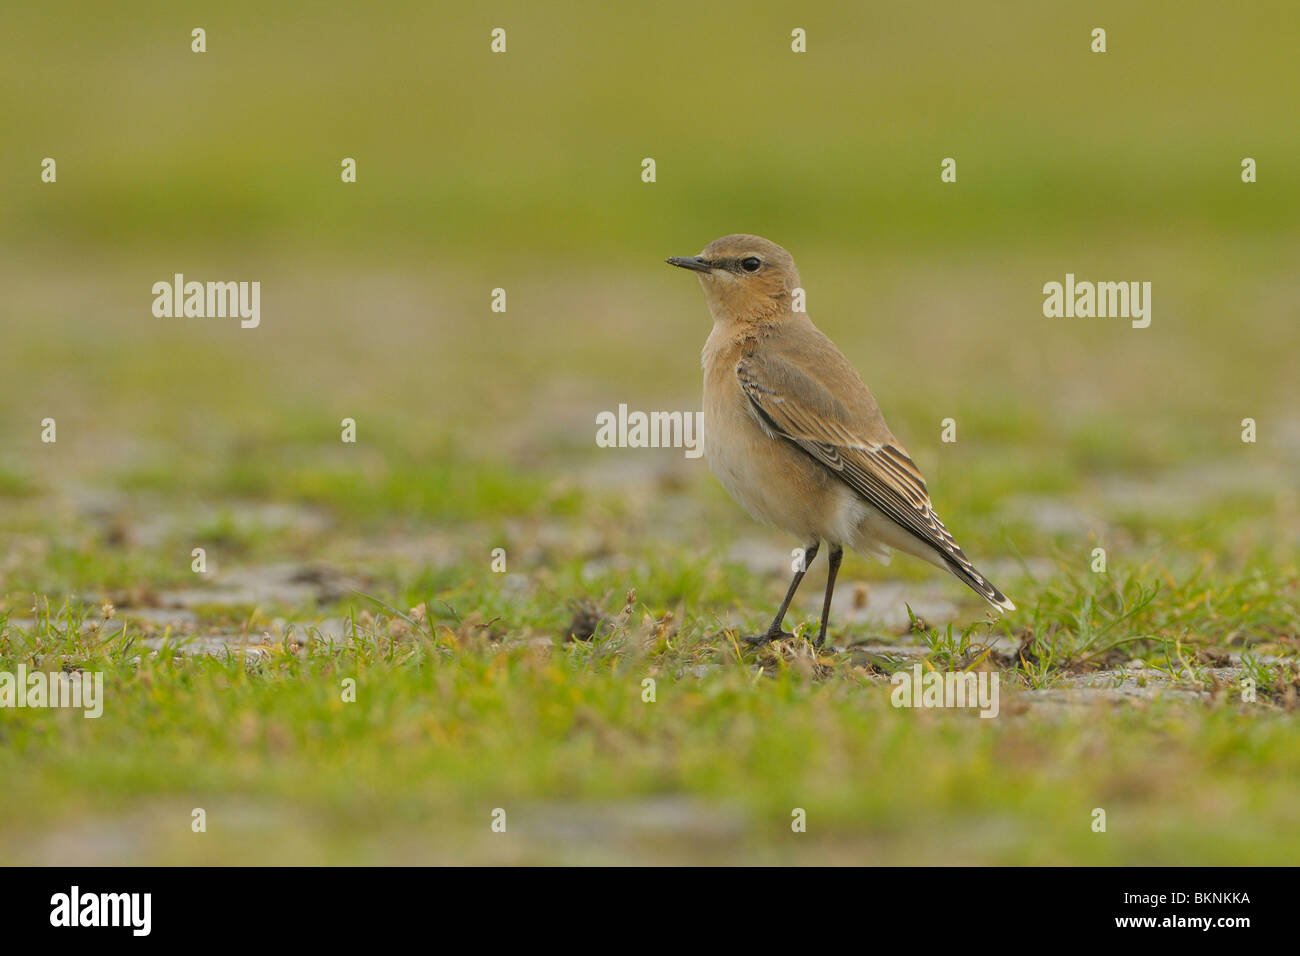 Tapuit foeragerend op de grond; Wheatear foraging on the ground with a low point of view Stock Photo